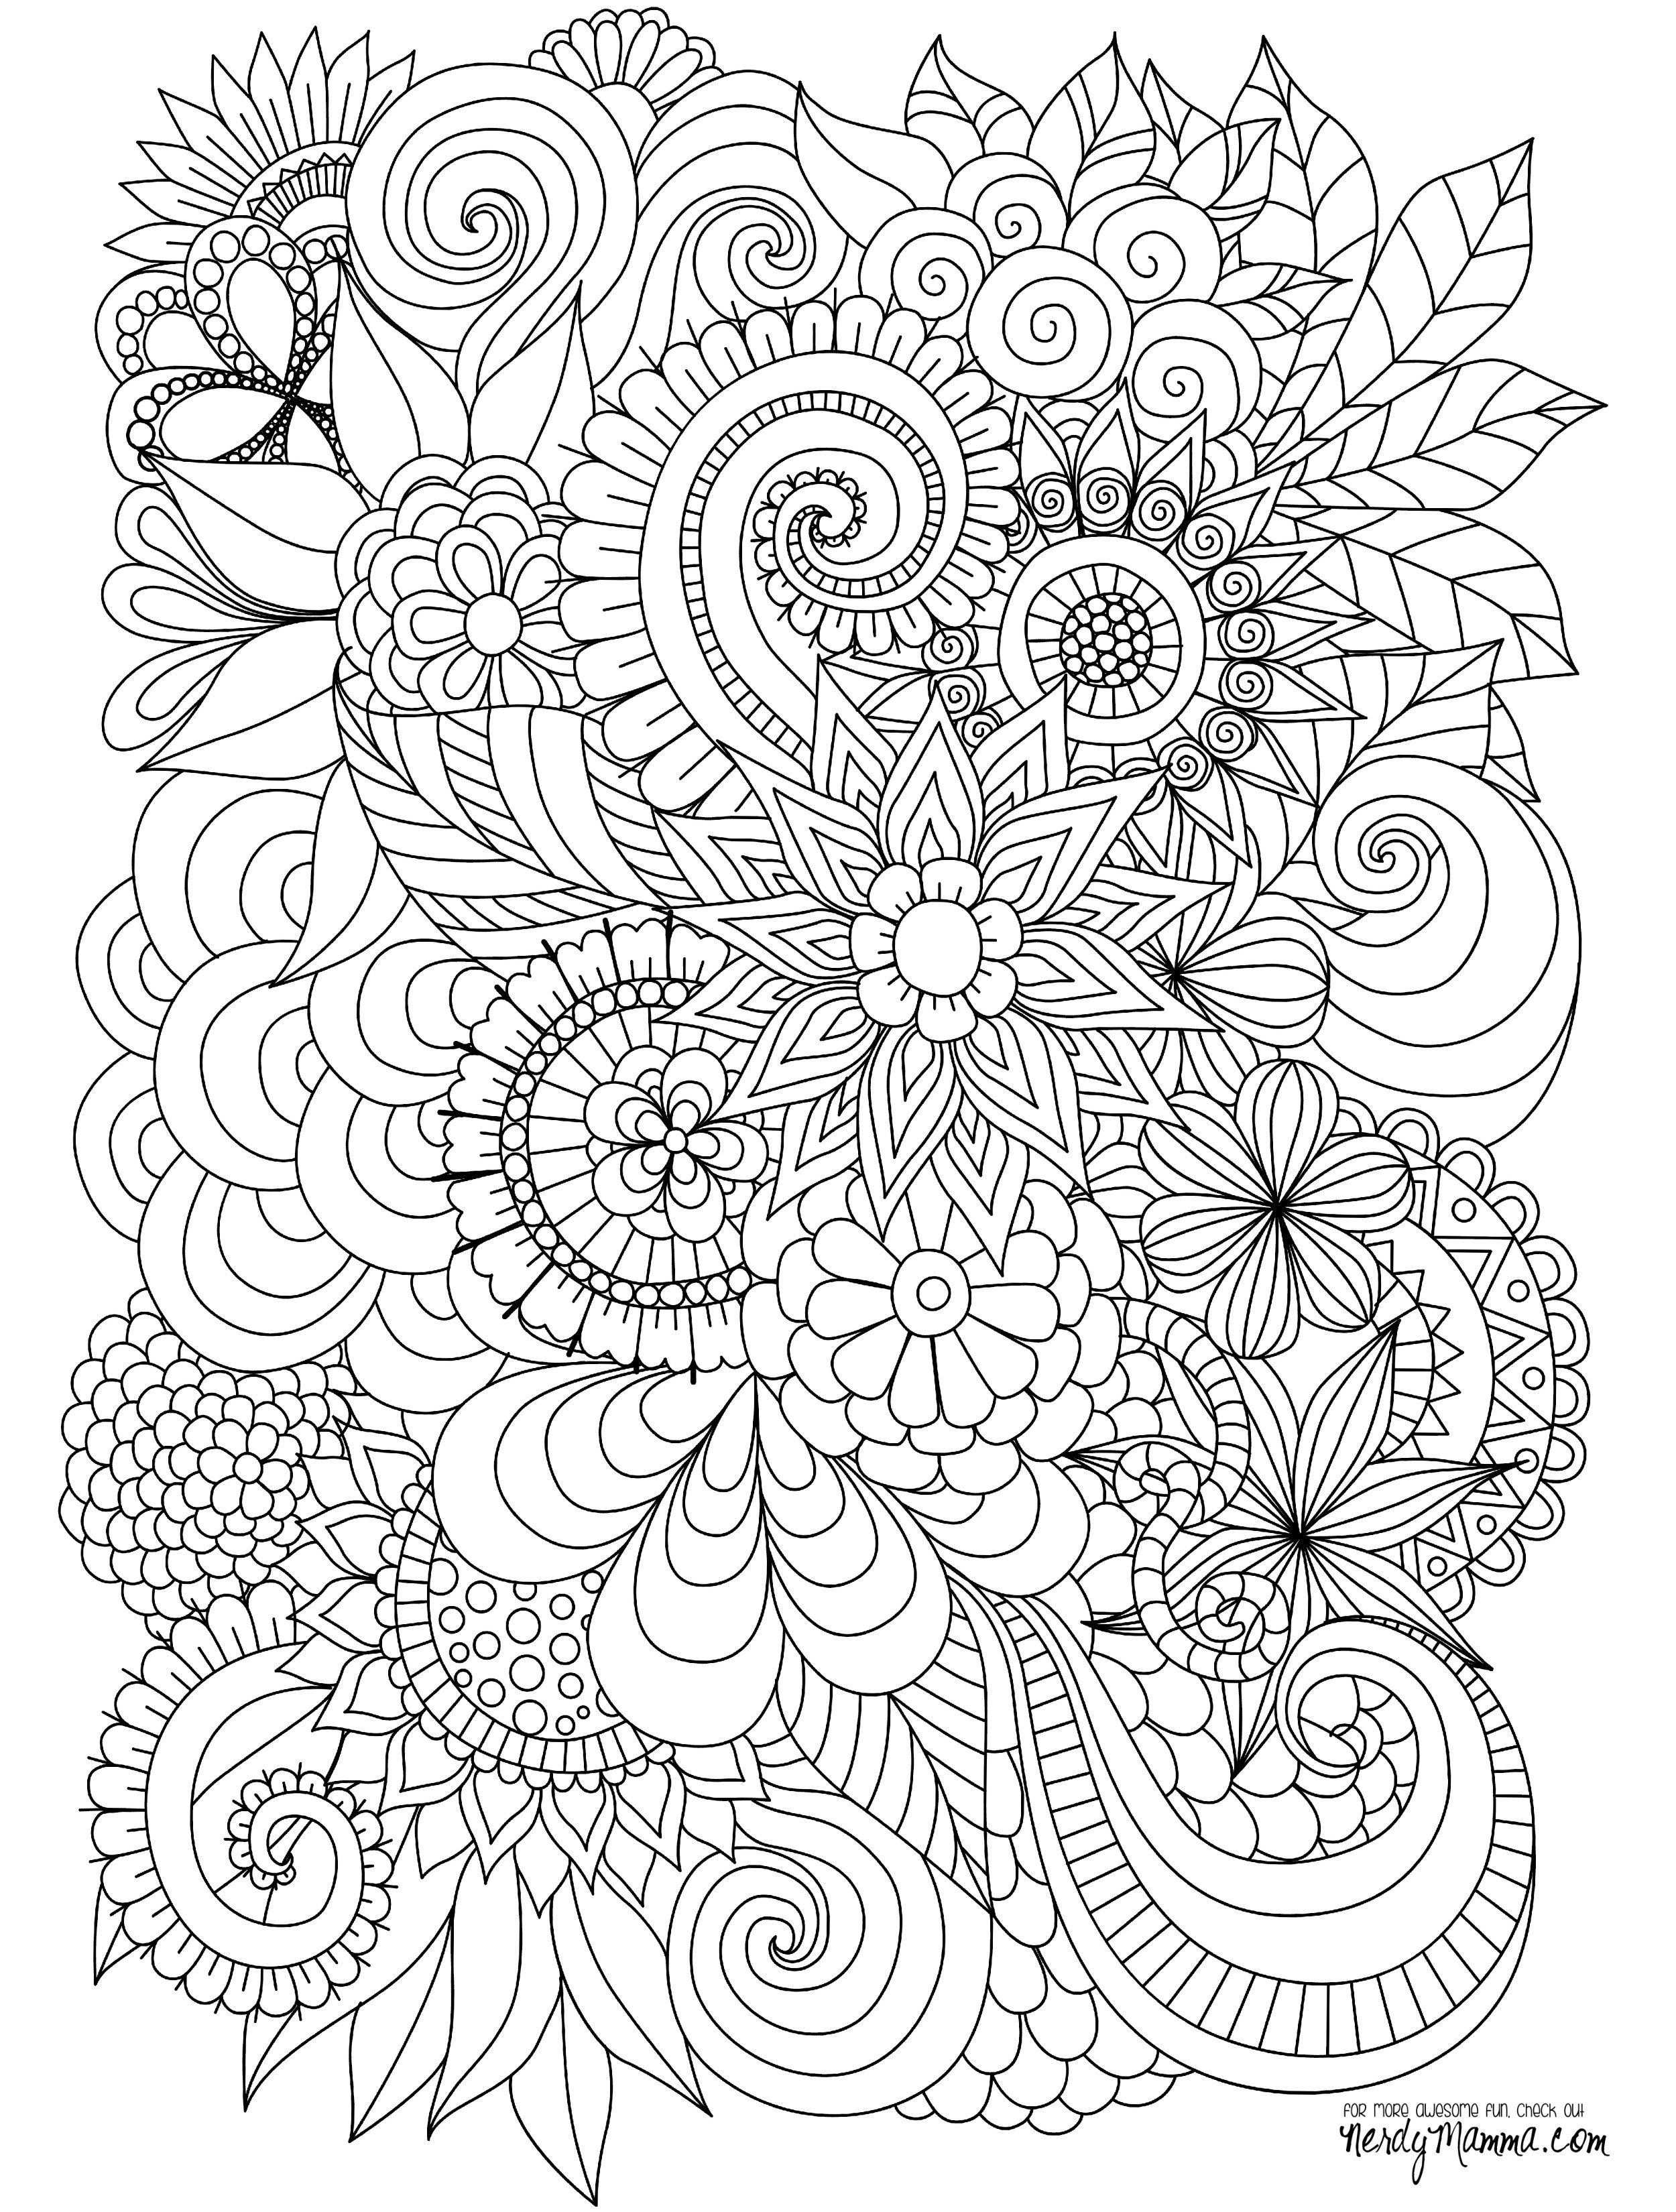 catcher coloring pages Collection-Flowers Abstract Coloring pages colouring adult detailed advanced printable Kleuren voor volwassenen coloriage pour adulte anti stress kleurplaat voor 18-i